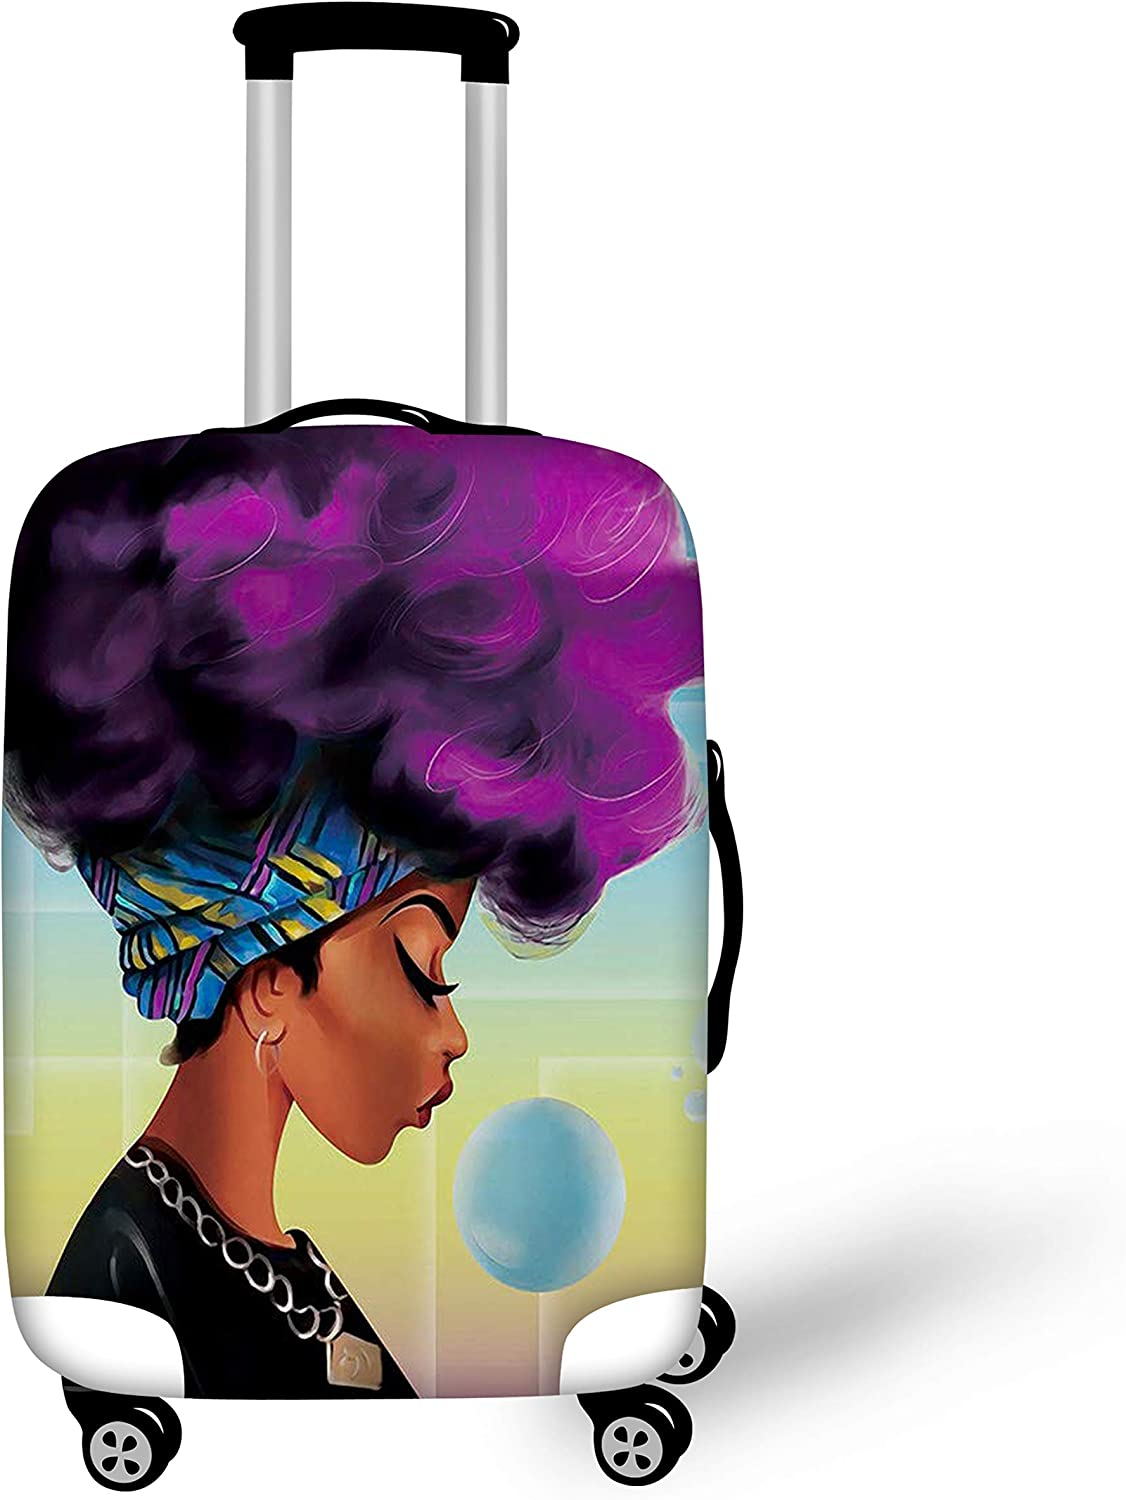 BIGCARJOB Trendy Luggage Cover Elastic Spandex Dust-proof Case African woman Printed Fit 30-32inch Suitcase